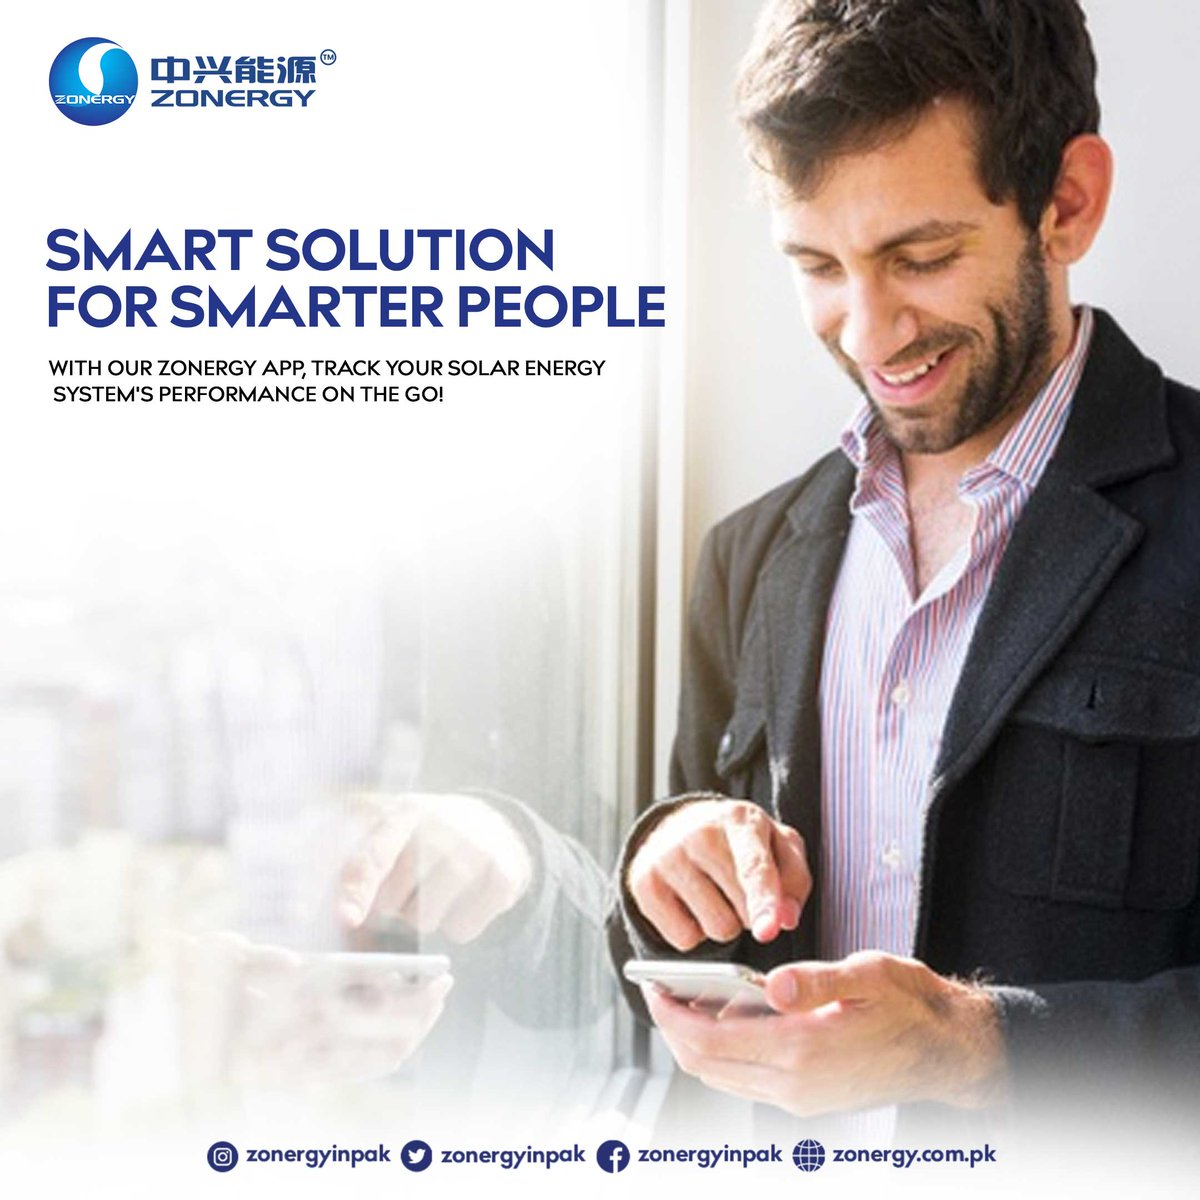 Zonergy is growing smarter being surrounded by smart people just like you. With Zonergy mobile app, you can monitor your solar's performance in real-time.  #zonergy #solarenergy #smartsolution #solarpanels pic.twitter.com/s6J1cd8G7i